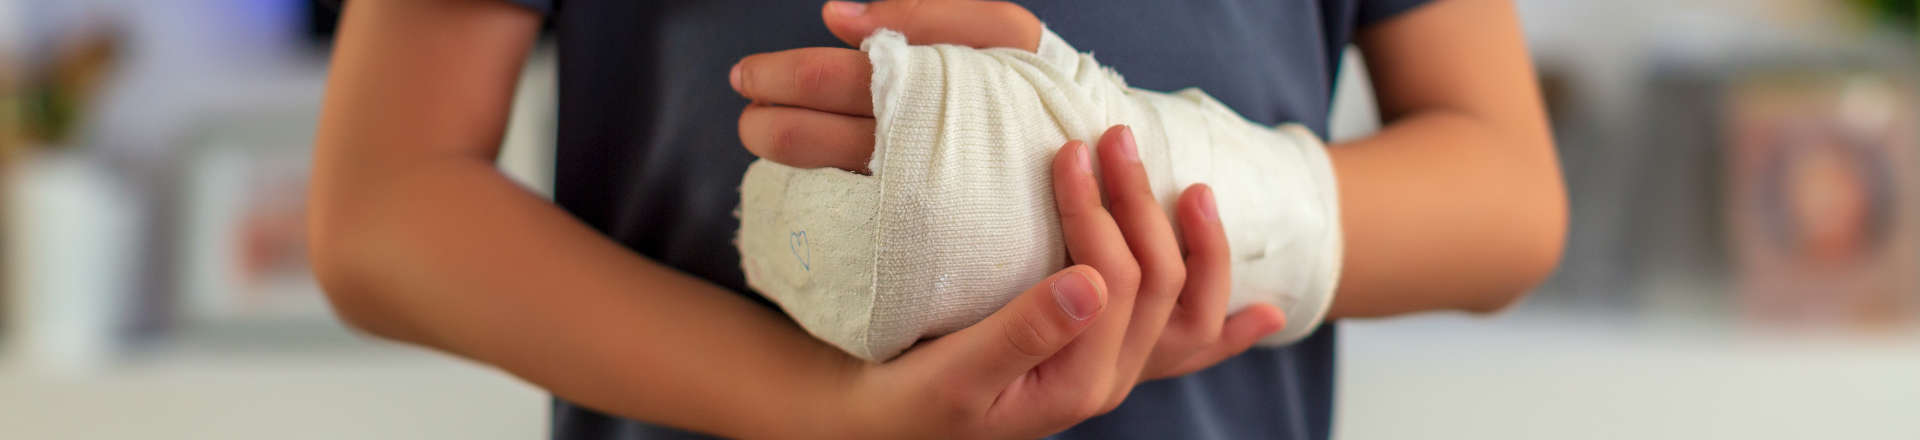 a child with injured hand covered with a bandage